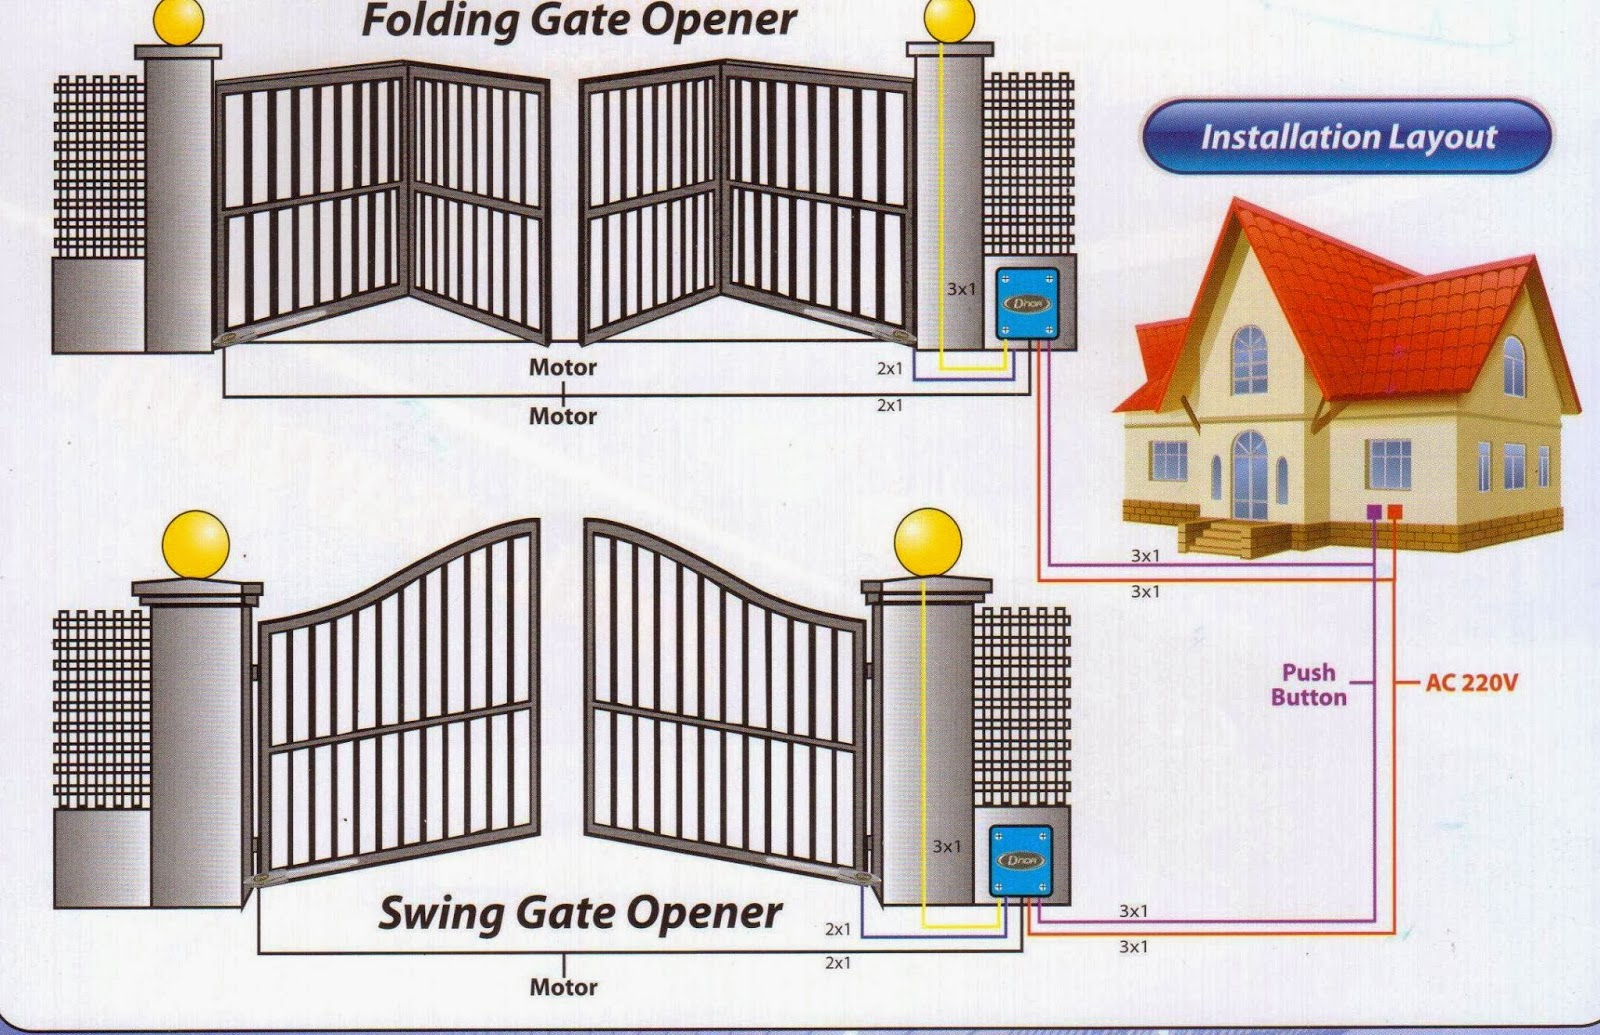 Swing Wiring autogate malaysia technical support auto gate wiring diagram malaysia at cos-gaming.co